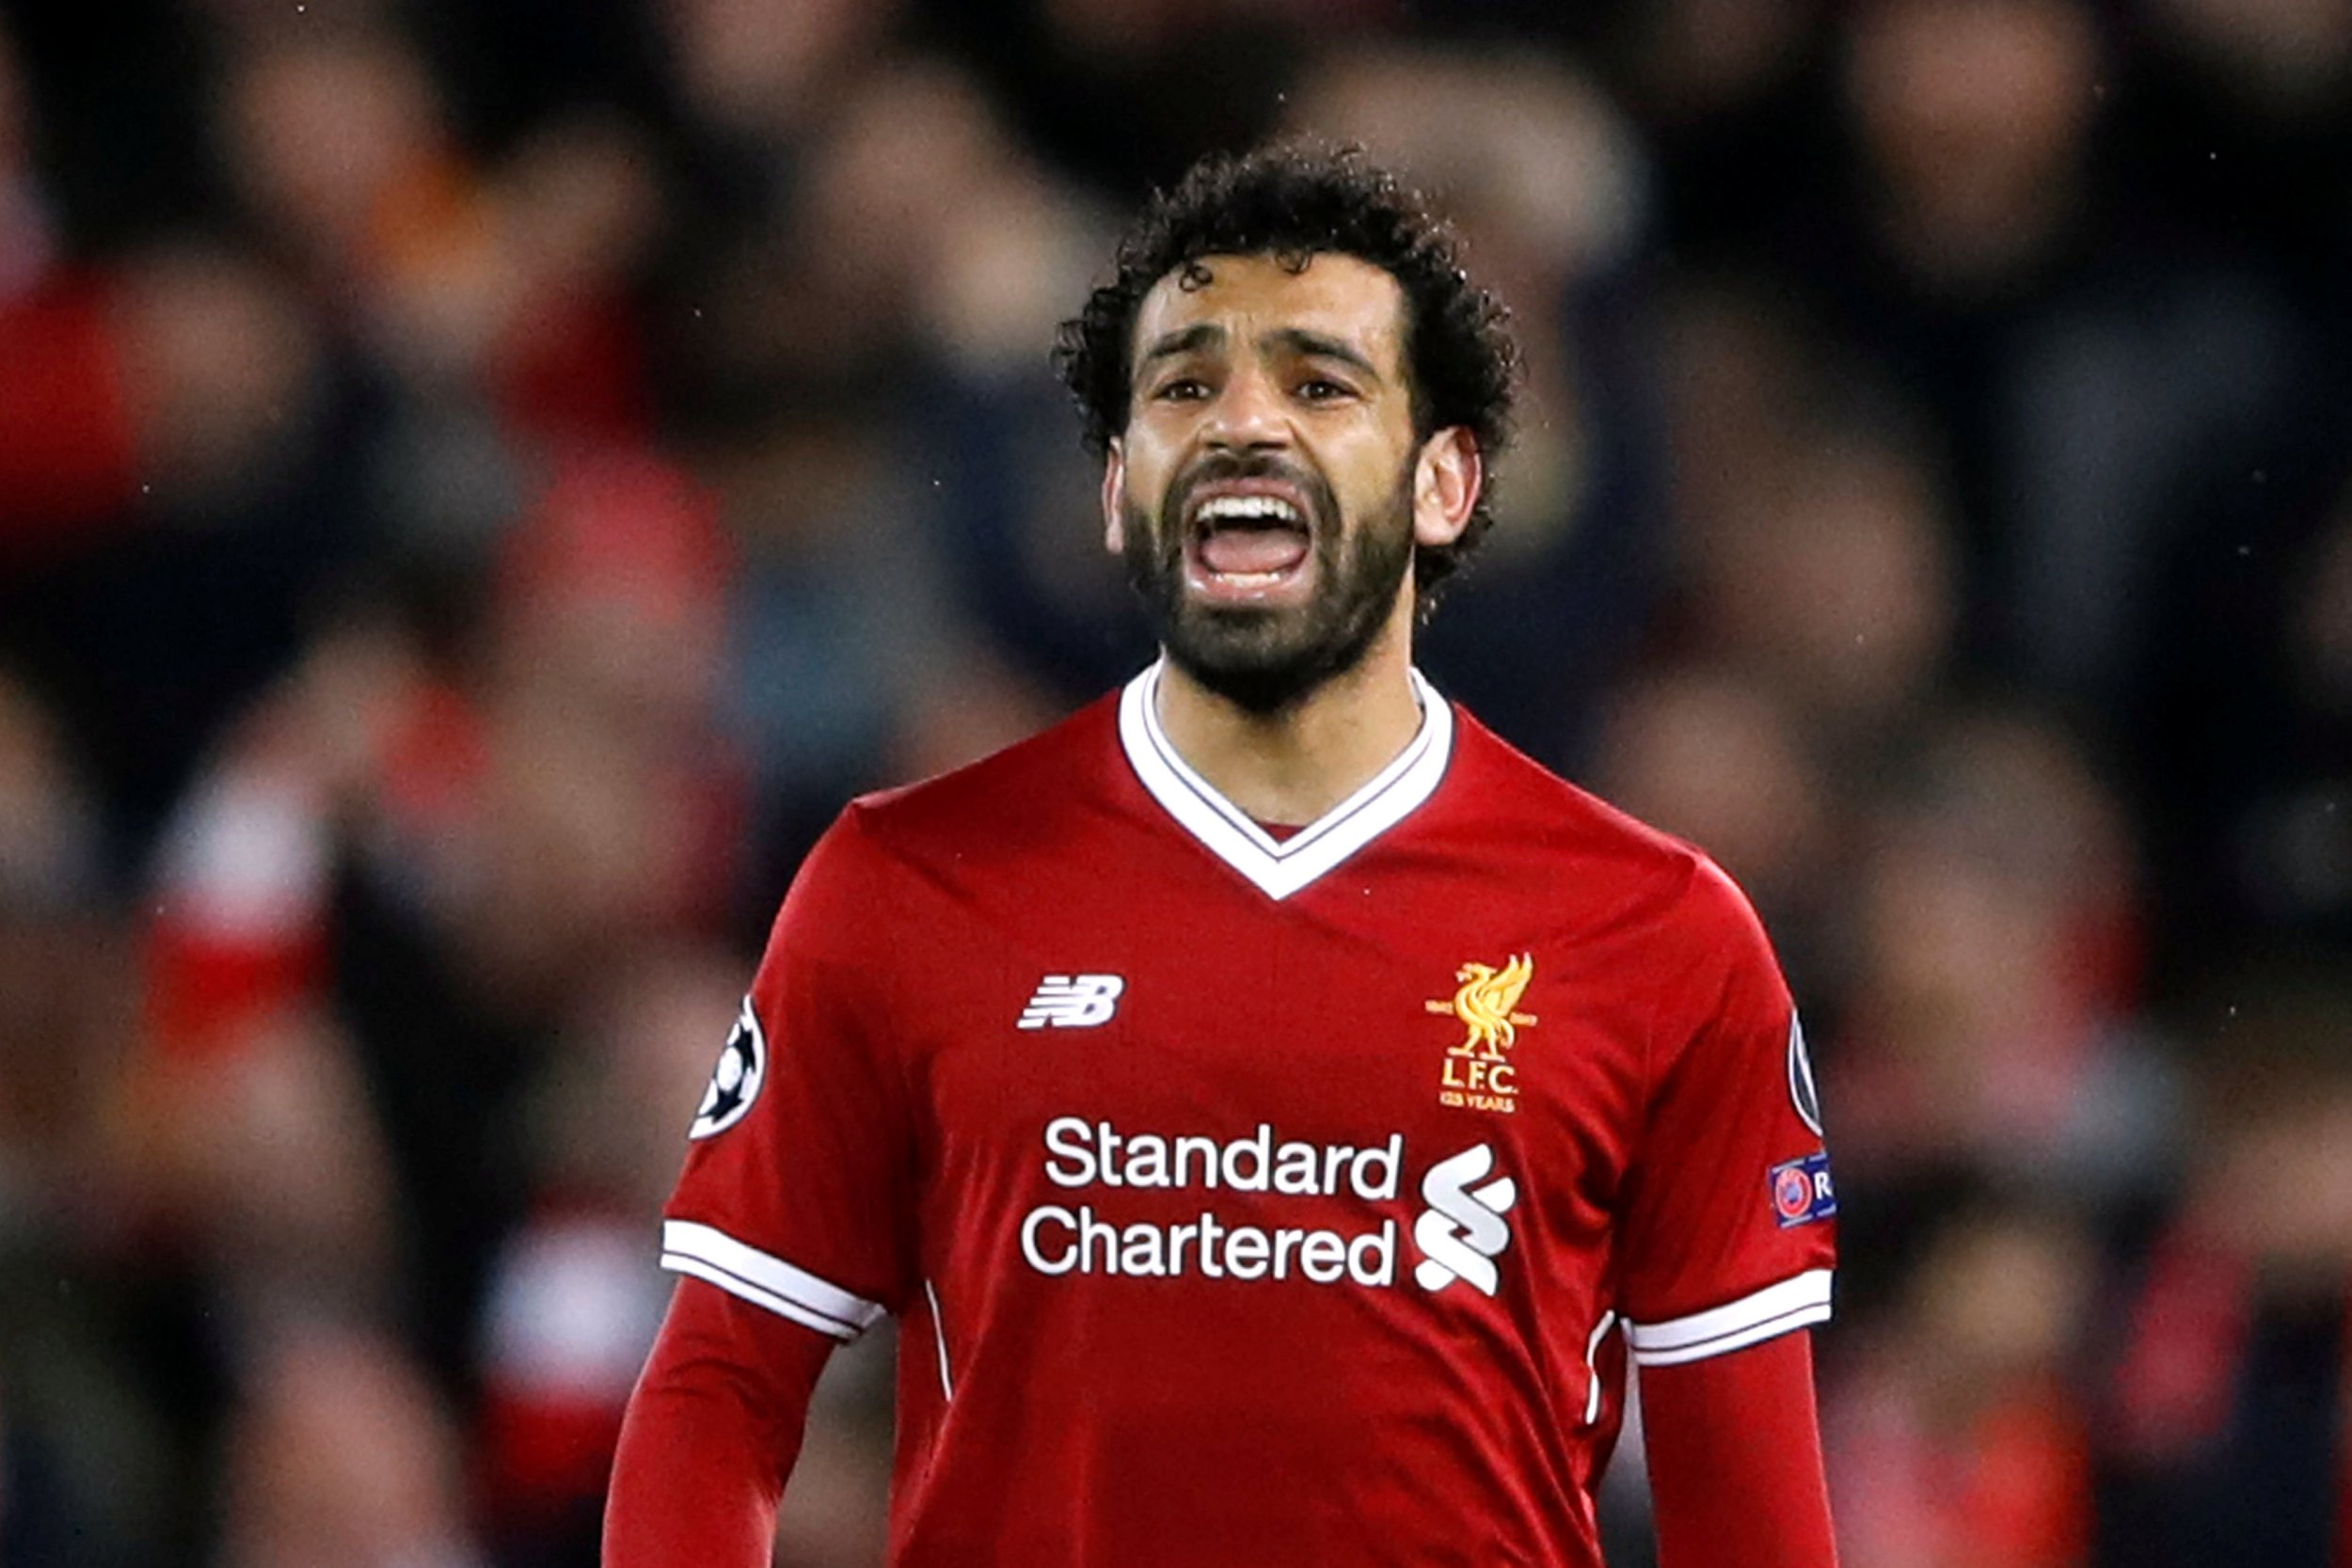 Soccer Football - Champions League Semi Final First Leg - Liverpool vs AS Roma - Anfield, Liverpool, Britain - April 24, 2018 Liverpool's Mohamed Salah Action Images via Reuters/Carl Recine